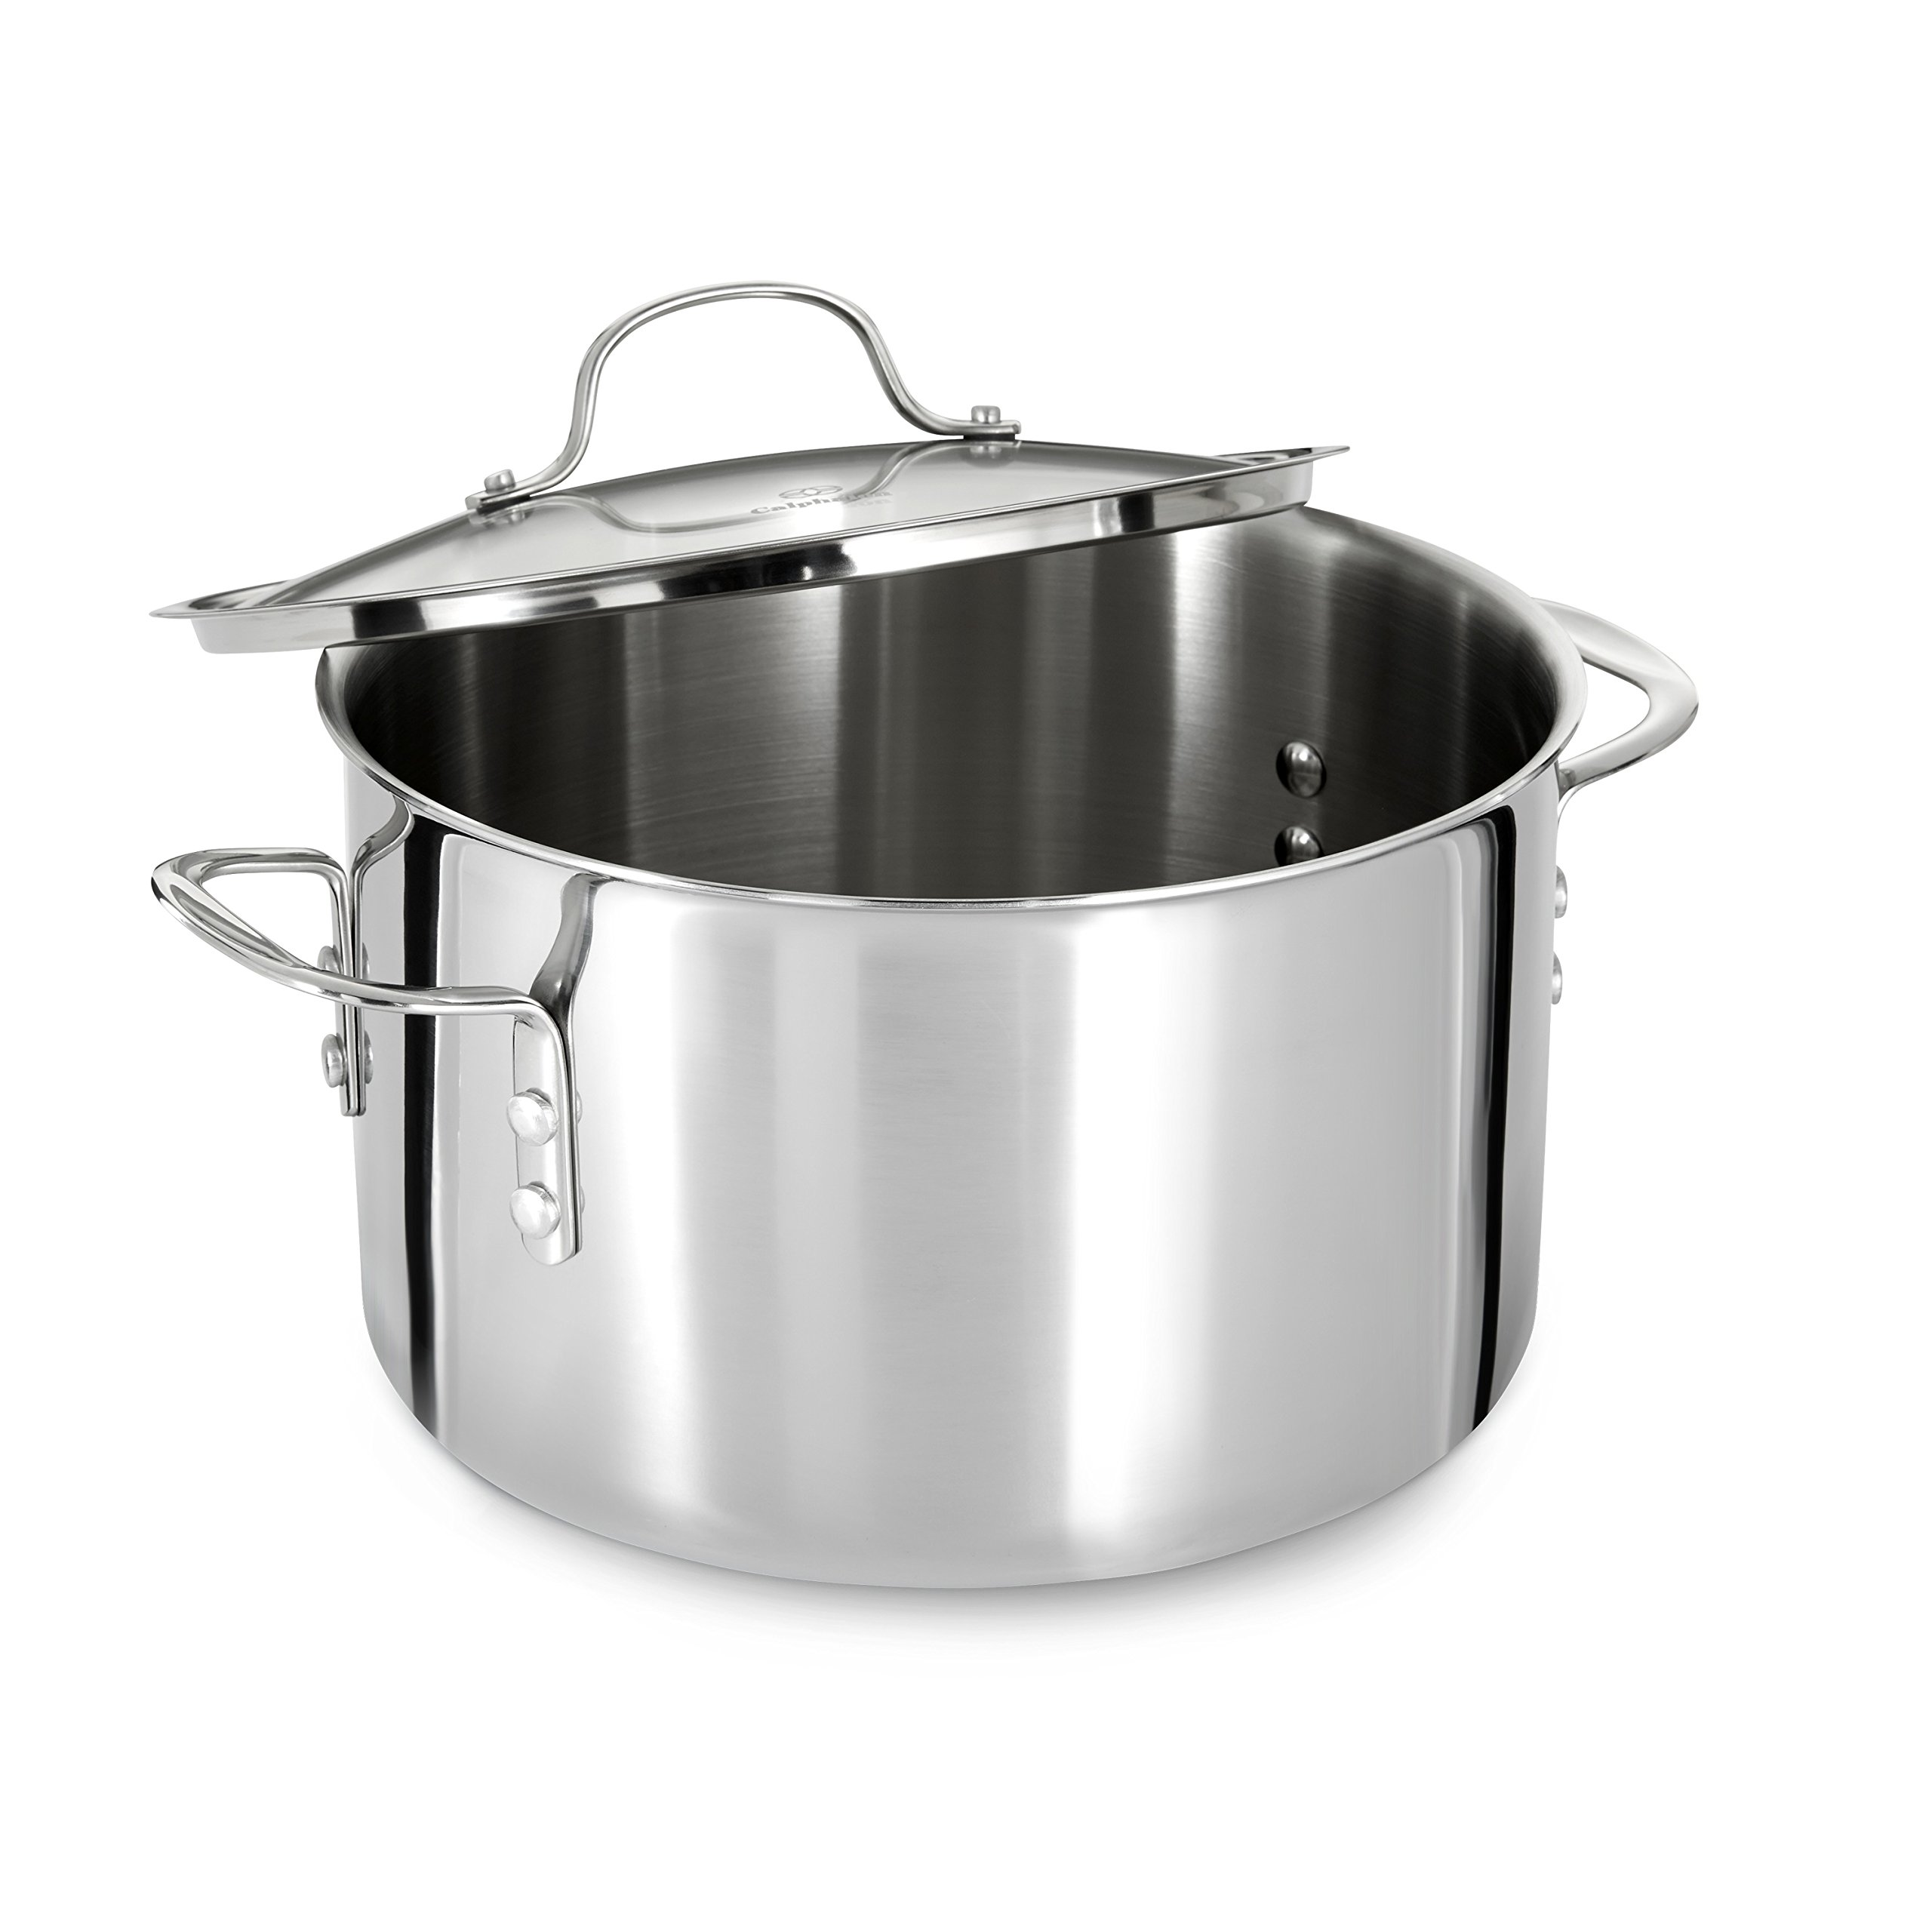 Calphalon (1767727) Tri-Ply Stainless Steel 8-Quart Stock Pot with Cover by Calphalon (Image #3)